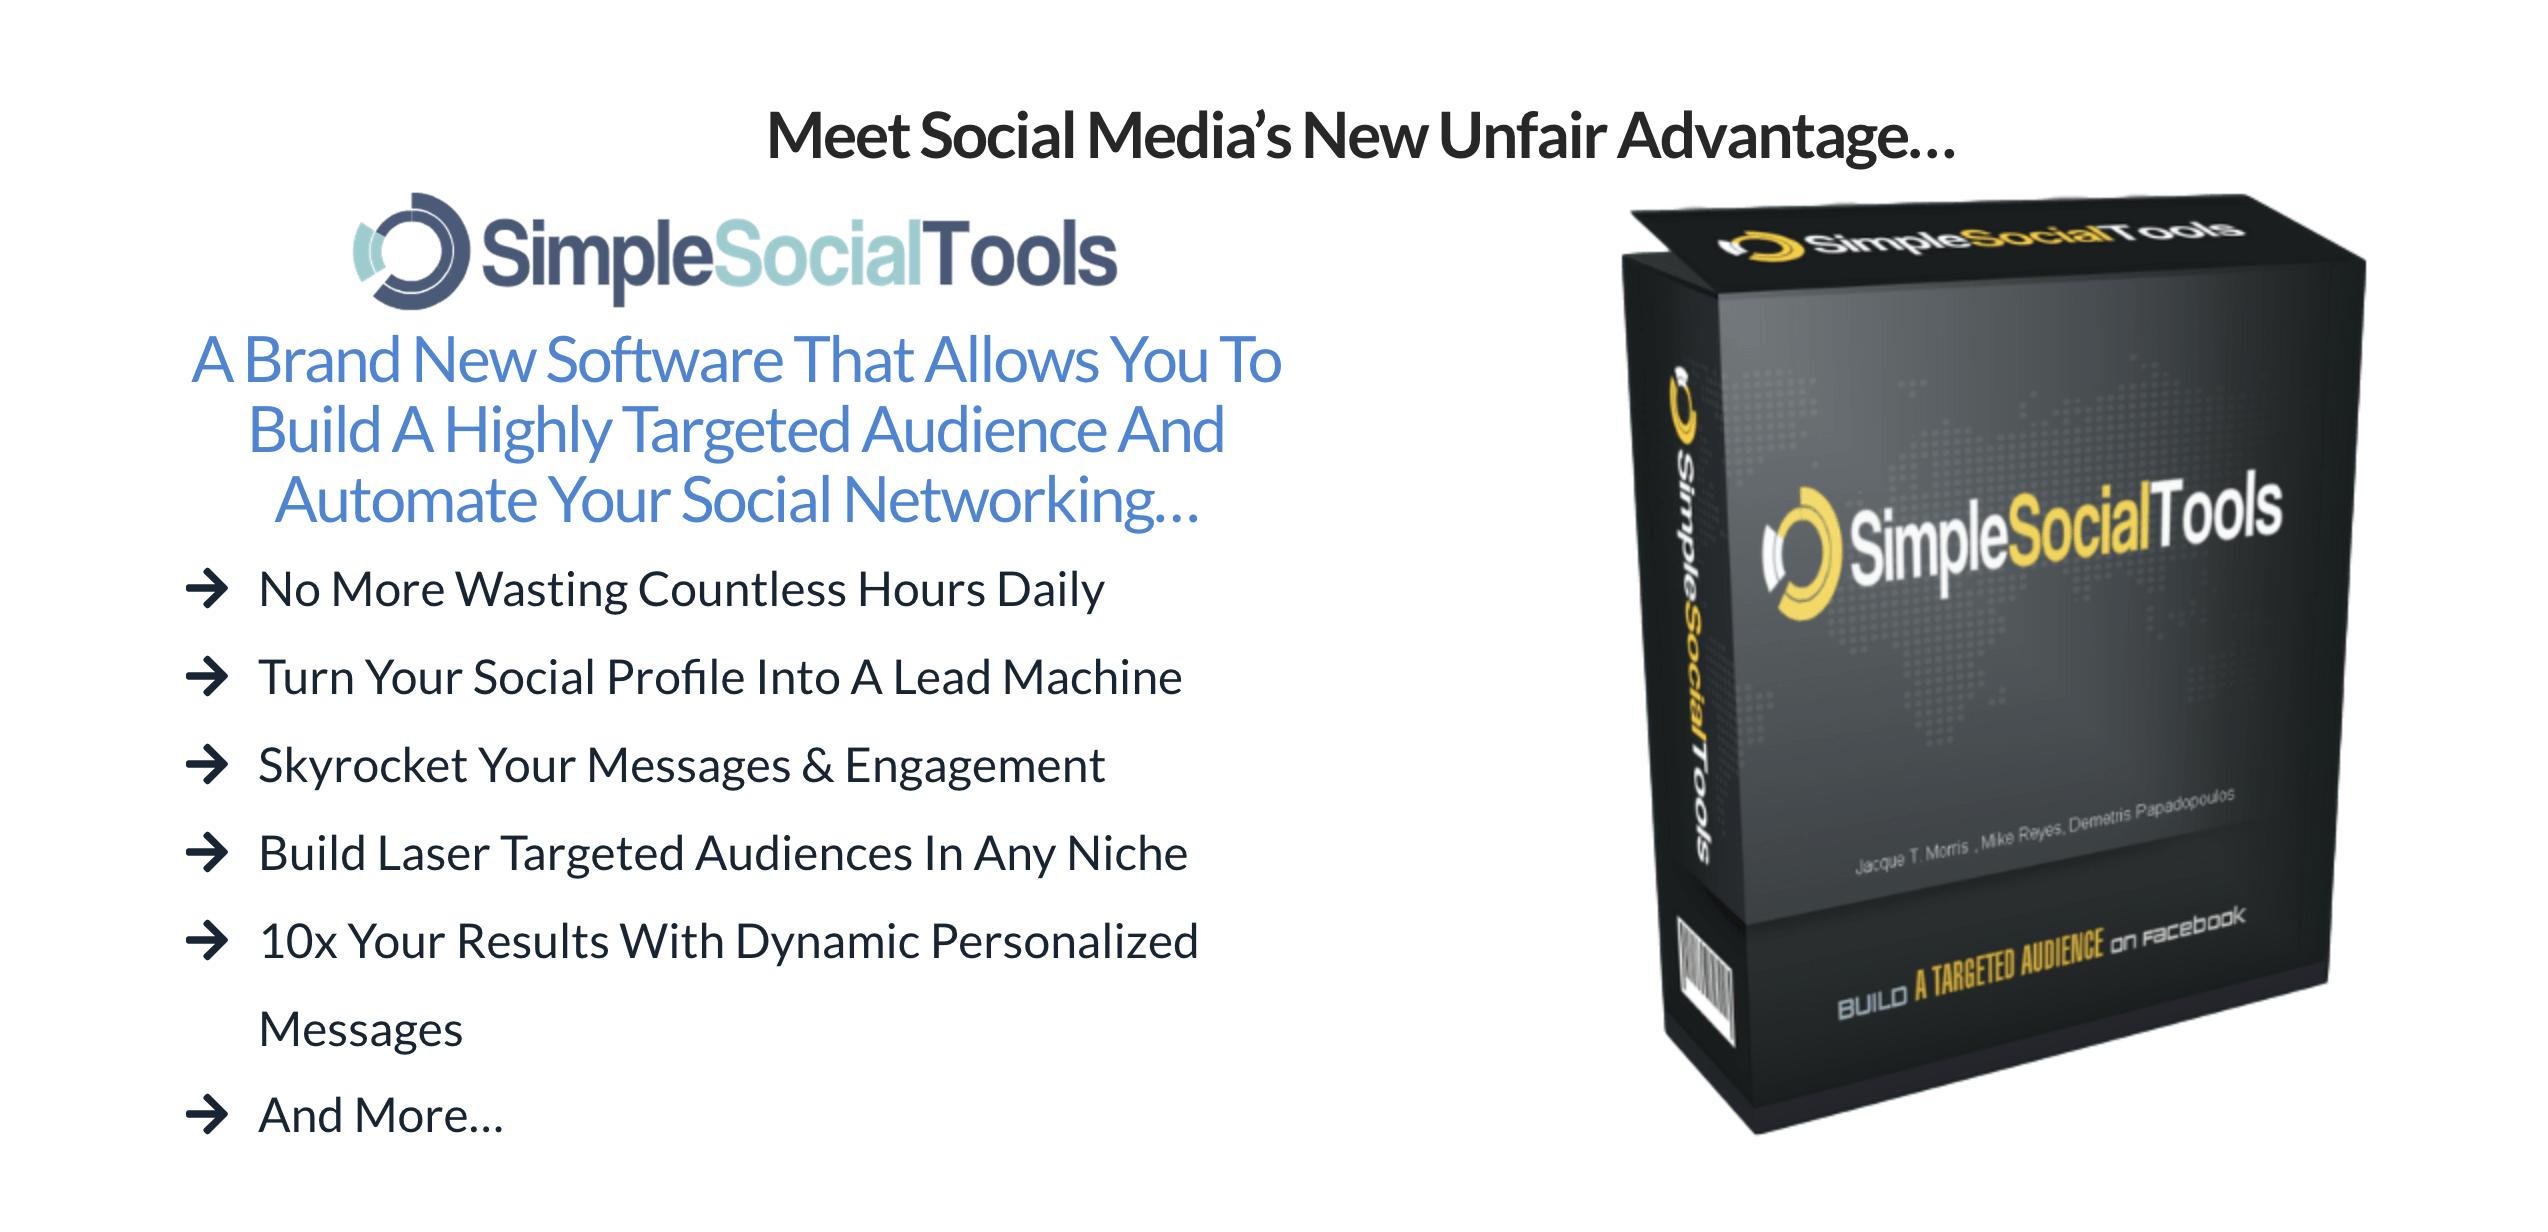 How To Build A Highly Targeted Audience on Social Media with Simple Social Tools 18